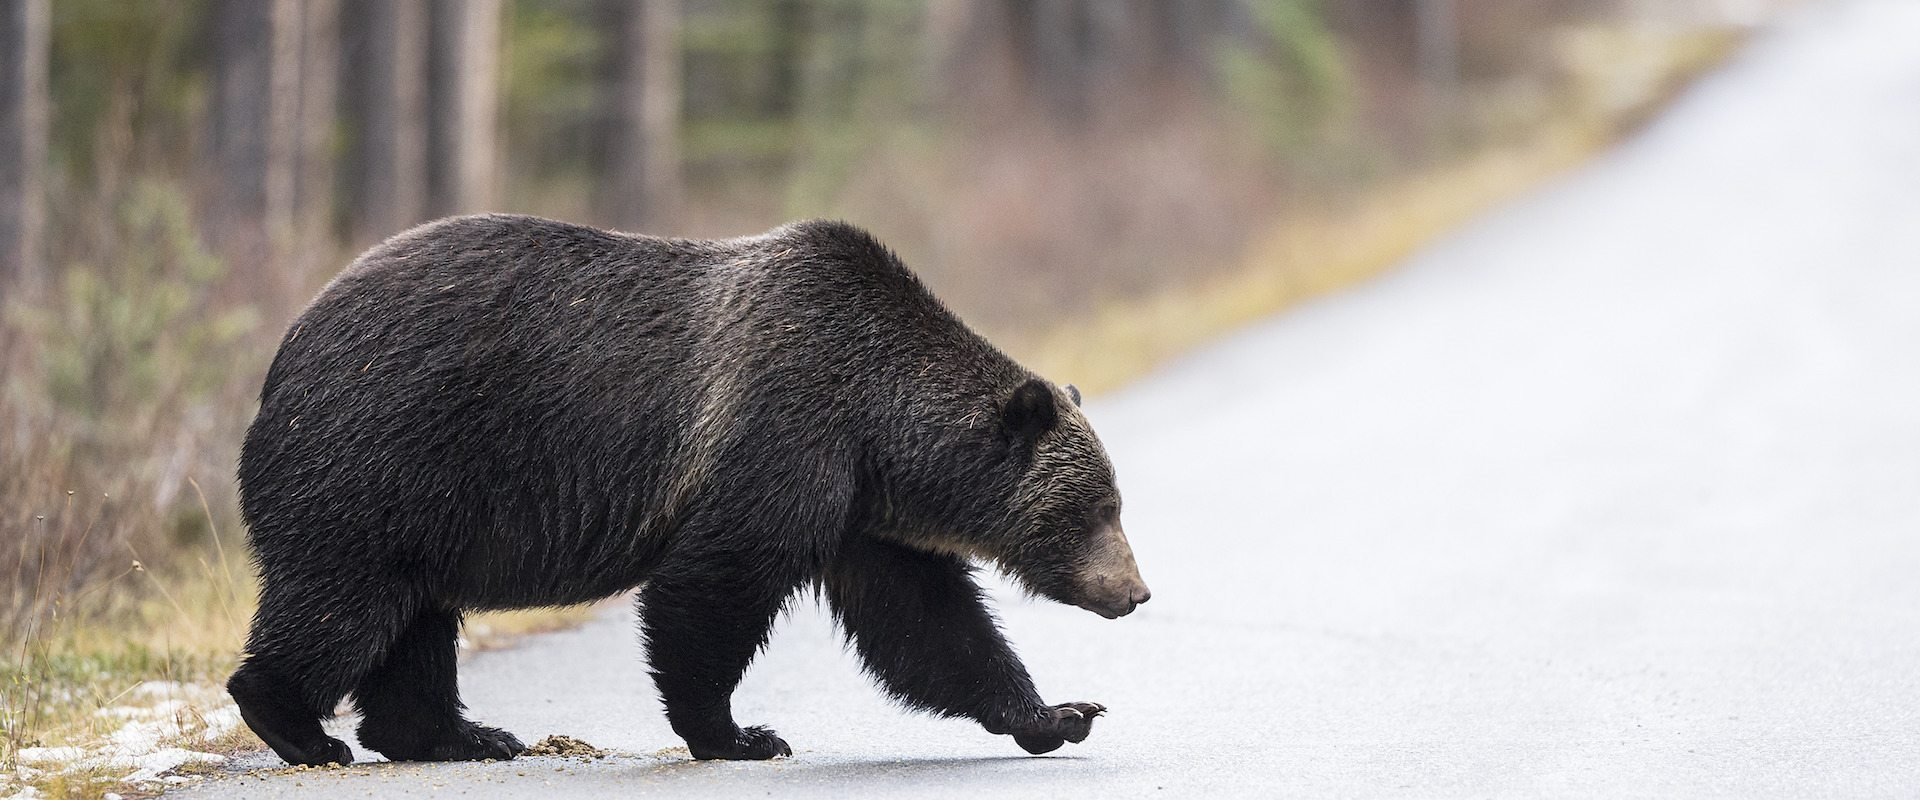 See Bears on the Evening Wildlife Safari Tour with Discover Banff Tours